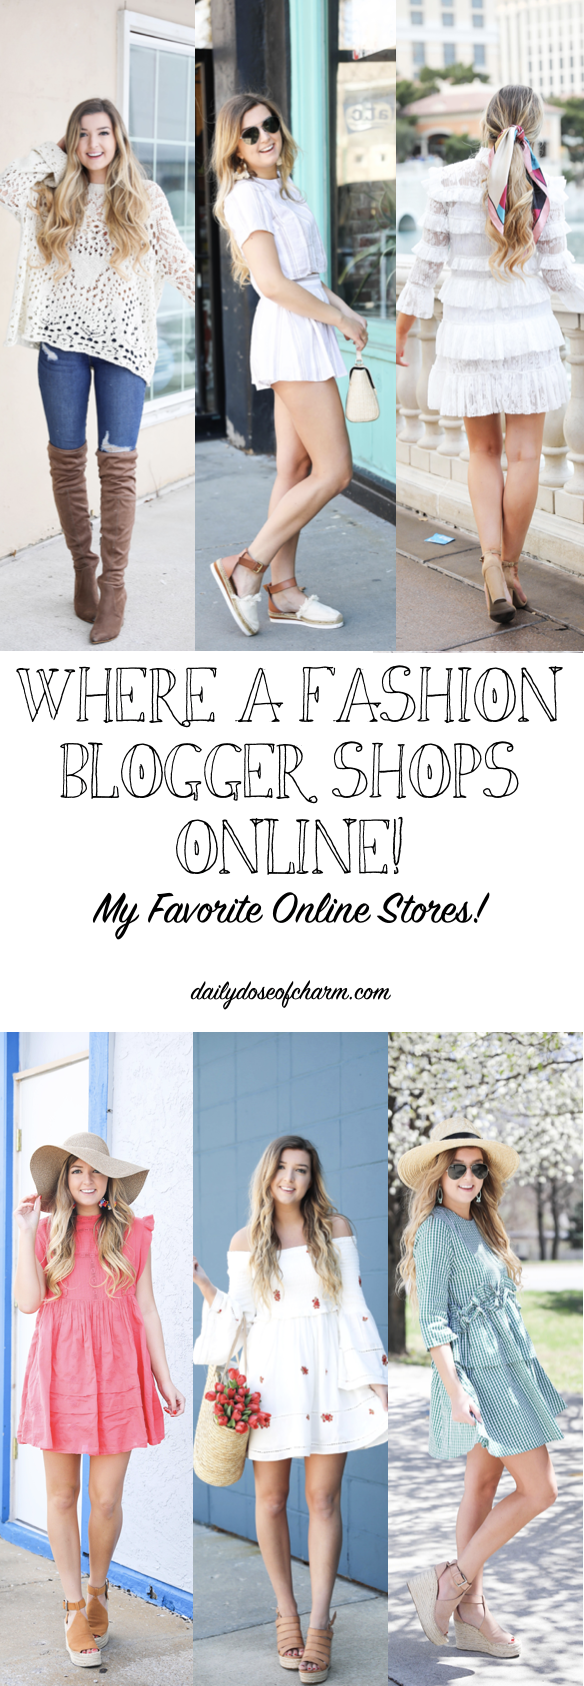 Where a fashion blogger shops online! best online clothing stores! By daily dose of charm by lauren lindmark